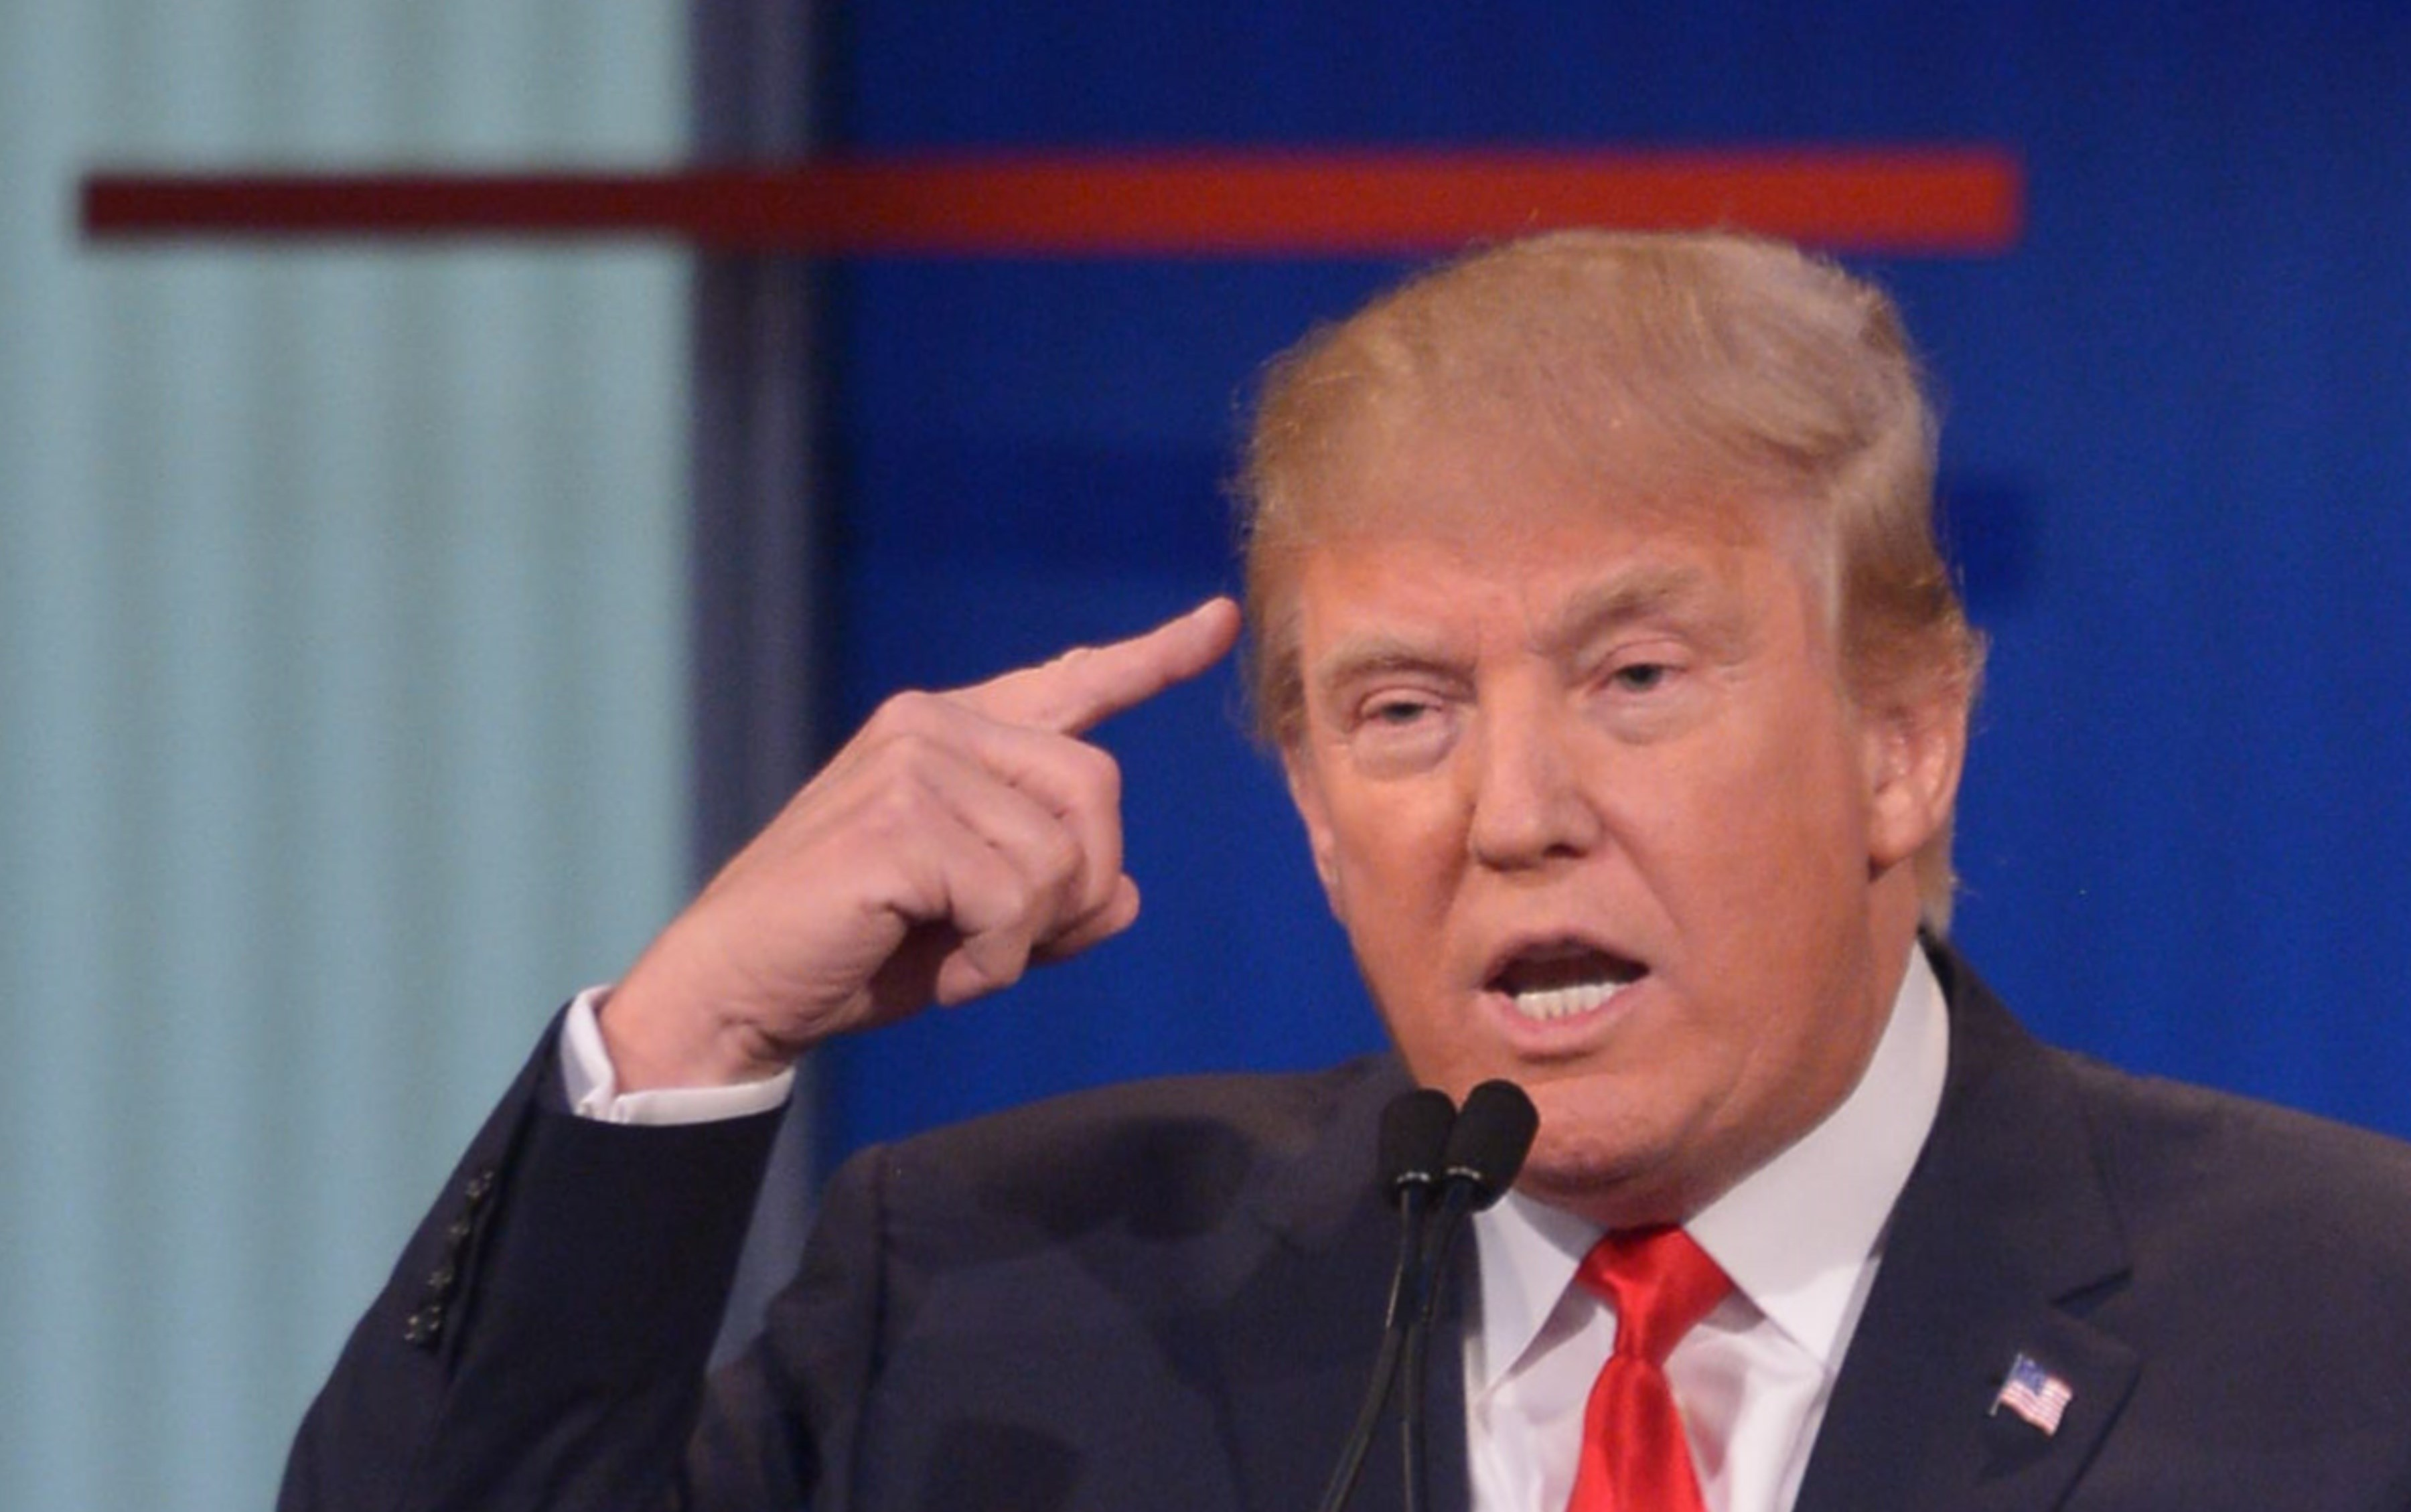 Real estate tycoon Donald Trump participates in the Republican presidential primary debate on August 6, 2015 at the Quicken Loans Arena in Cleveland, Ohio. AFP PHOTO / MANDEL NGAN        (Photo credit should read MANDEL NGAN/AFP/Getty Images)